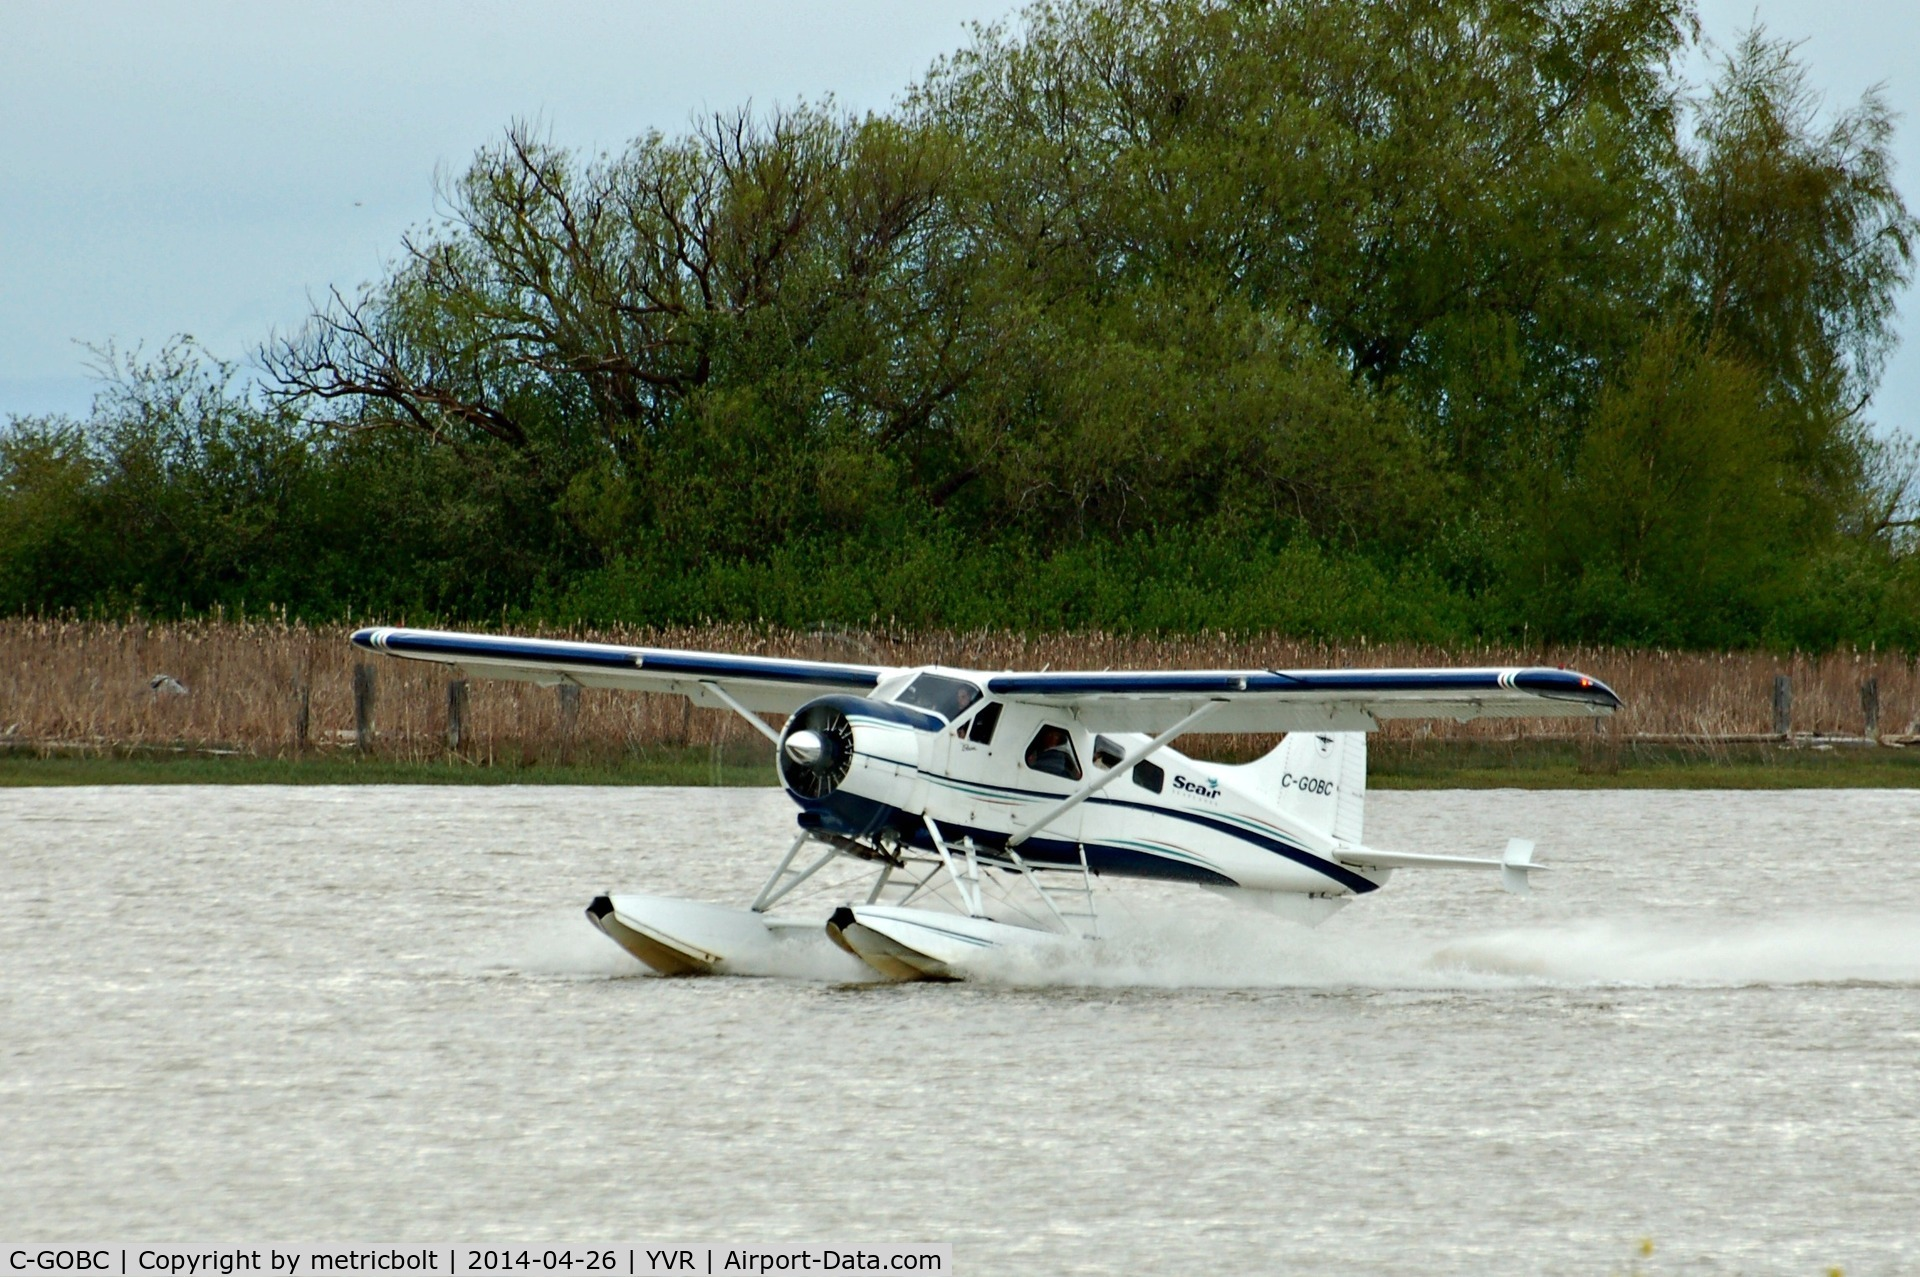 C-GOBC, 1964 De Havilland Canada DHC-2 MK. I C/N 1560, Take off from the Fraser River